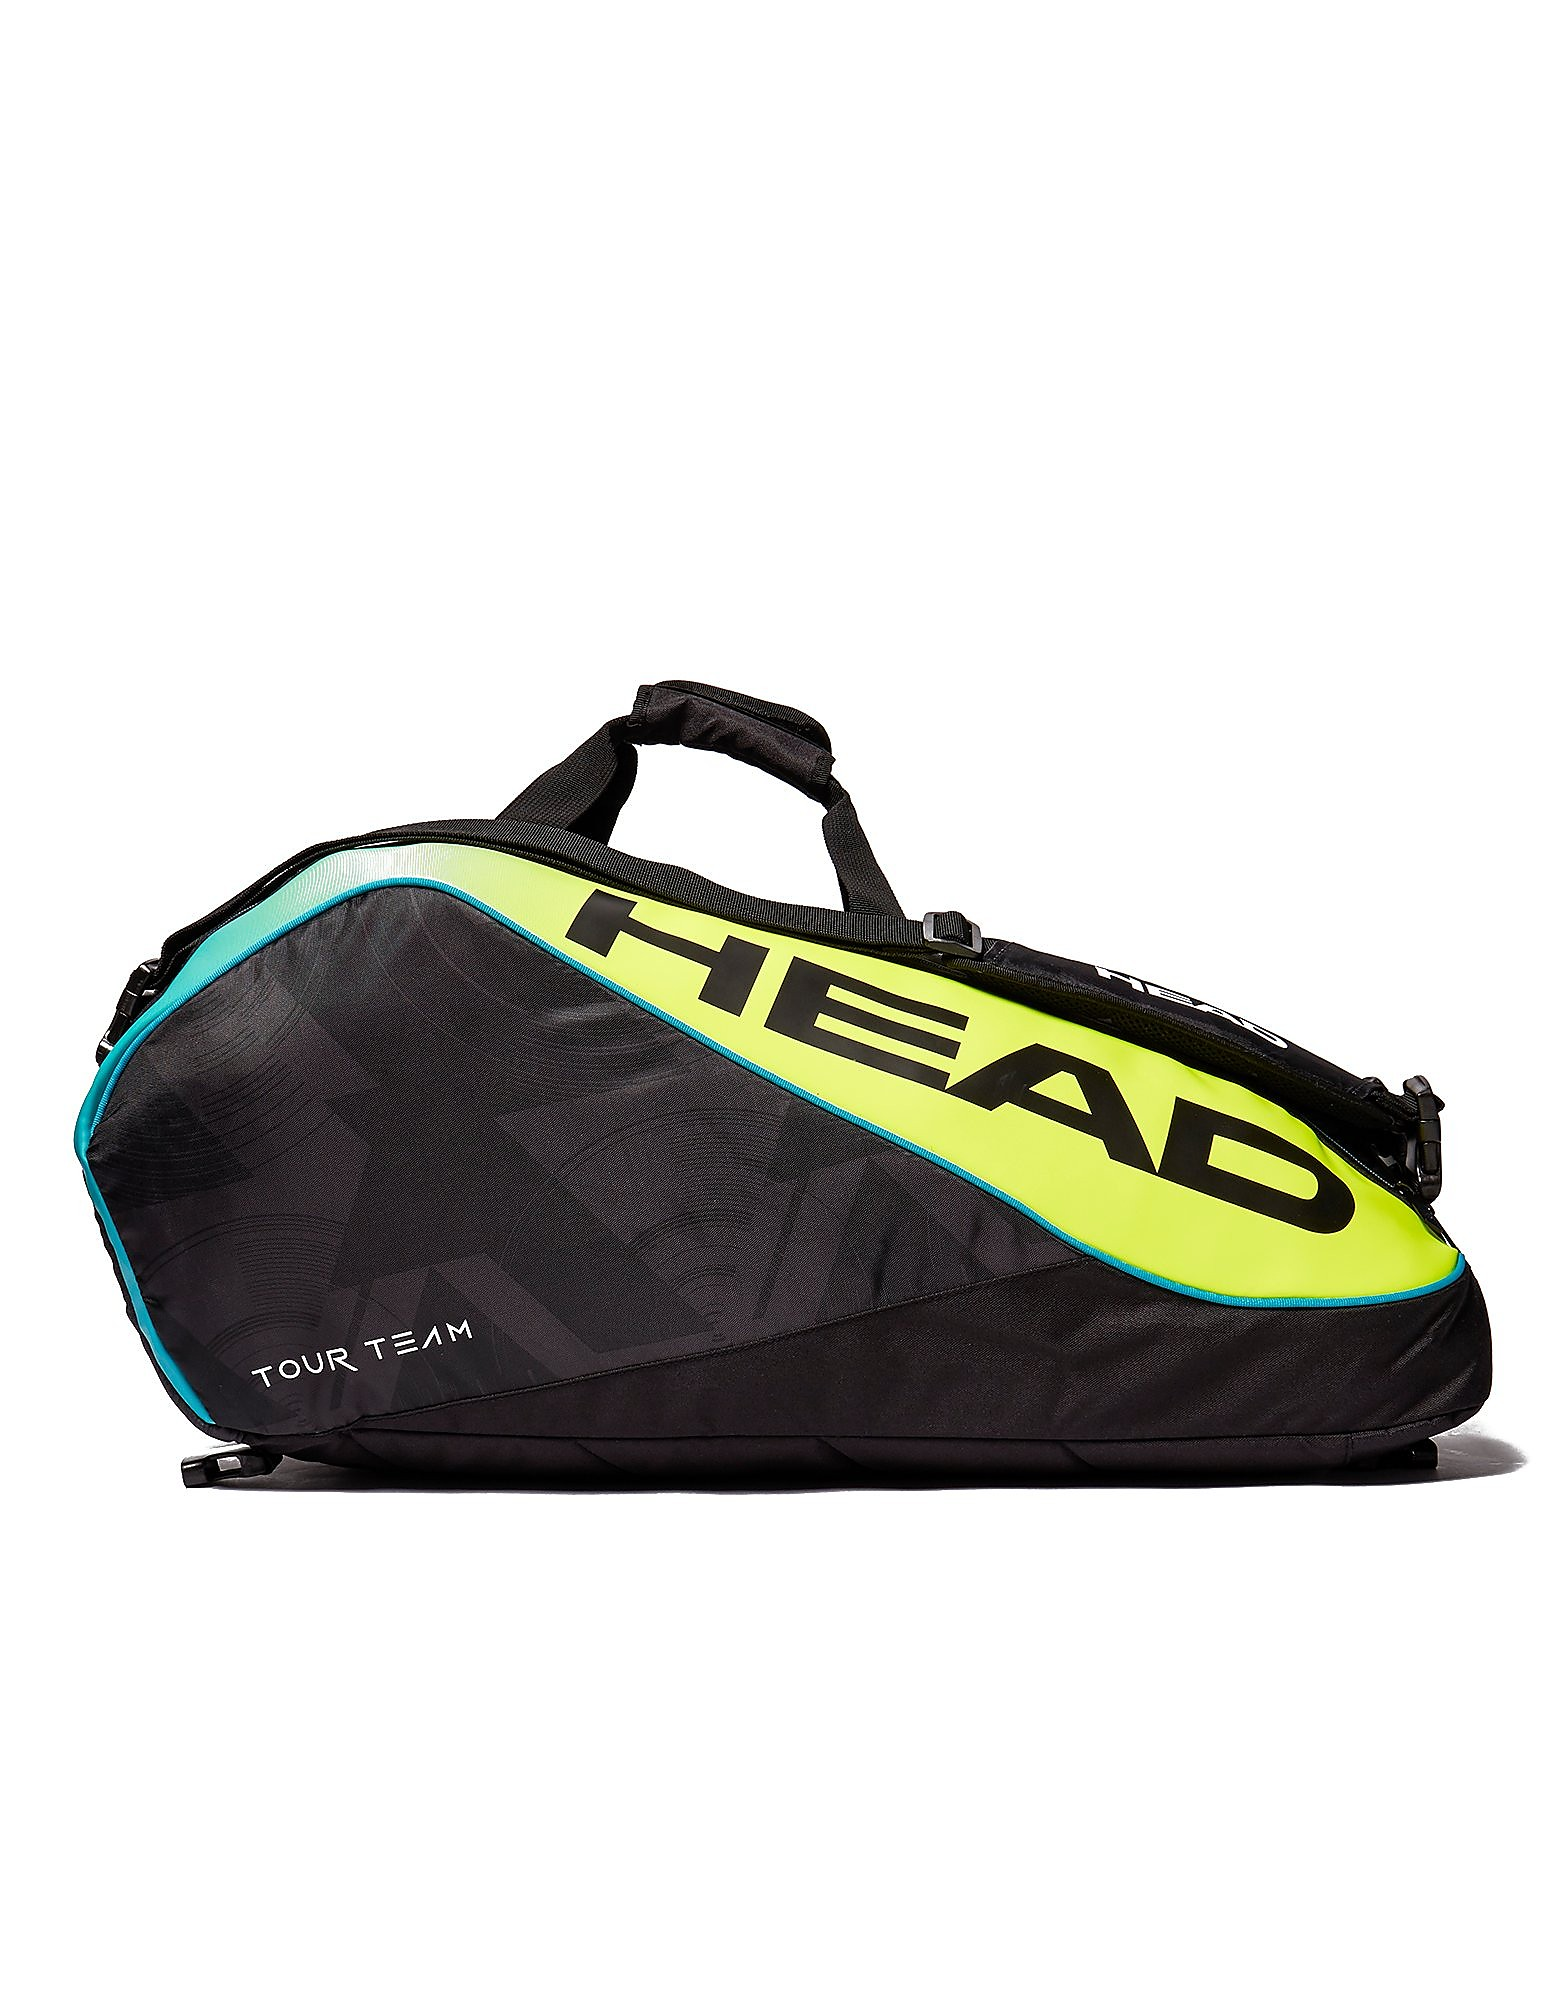 Head Extreme Supercombi 9 Racket Tennis Bag